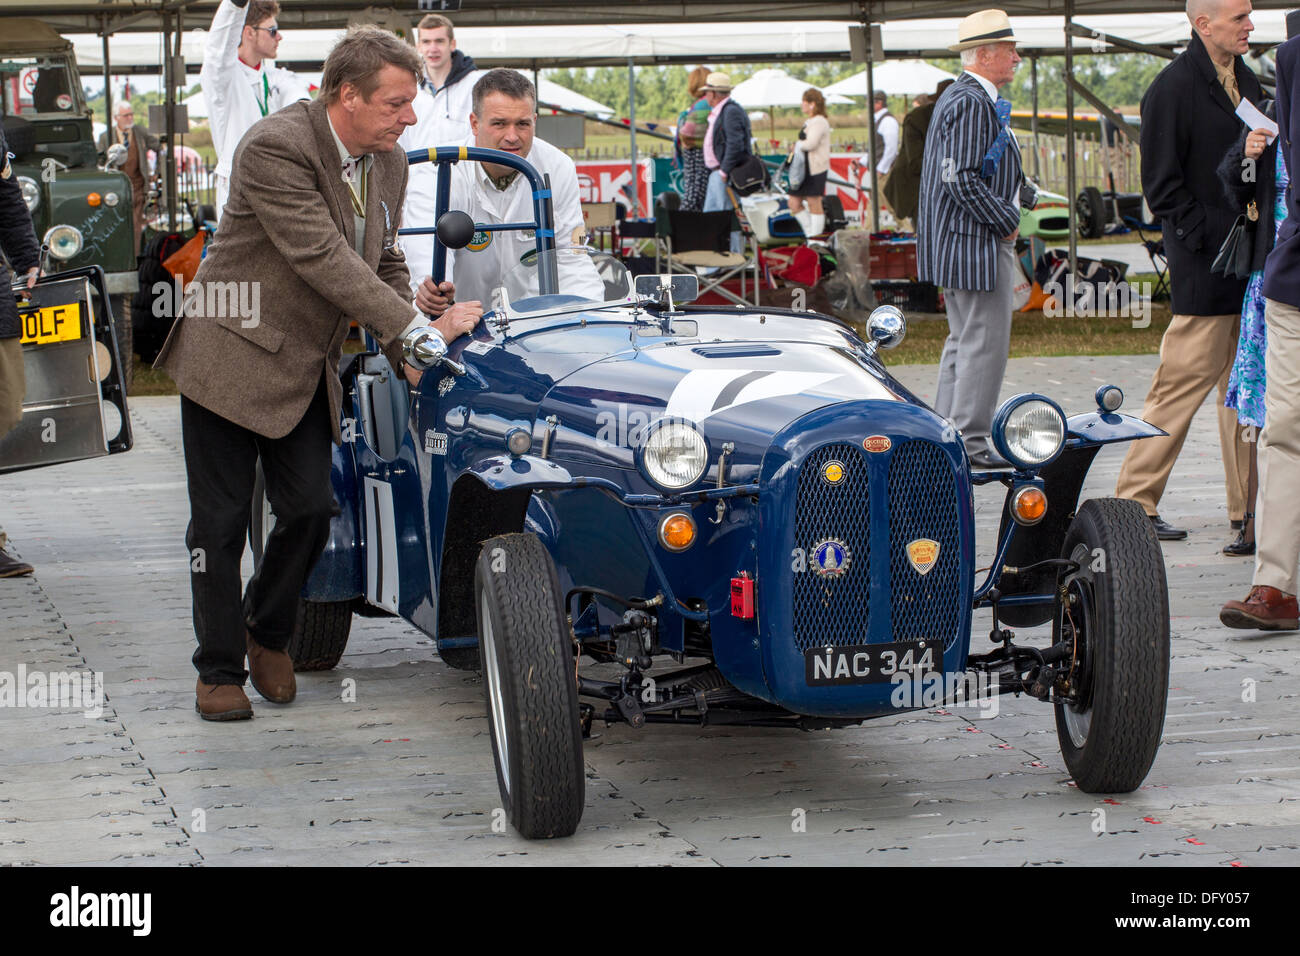 1951 Buckler Mk6 leaves the paddock at the 2013 Goodwood Revival, Sussex, UK. Stock Photo